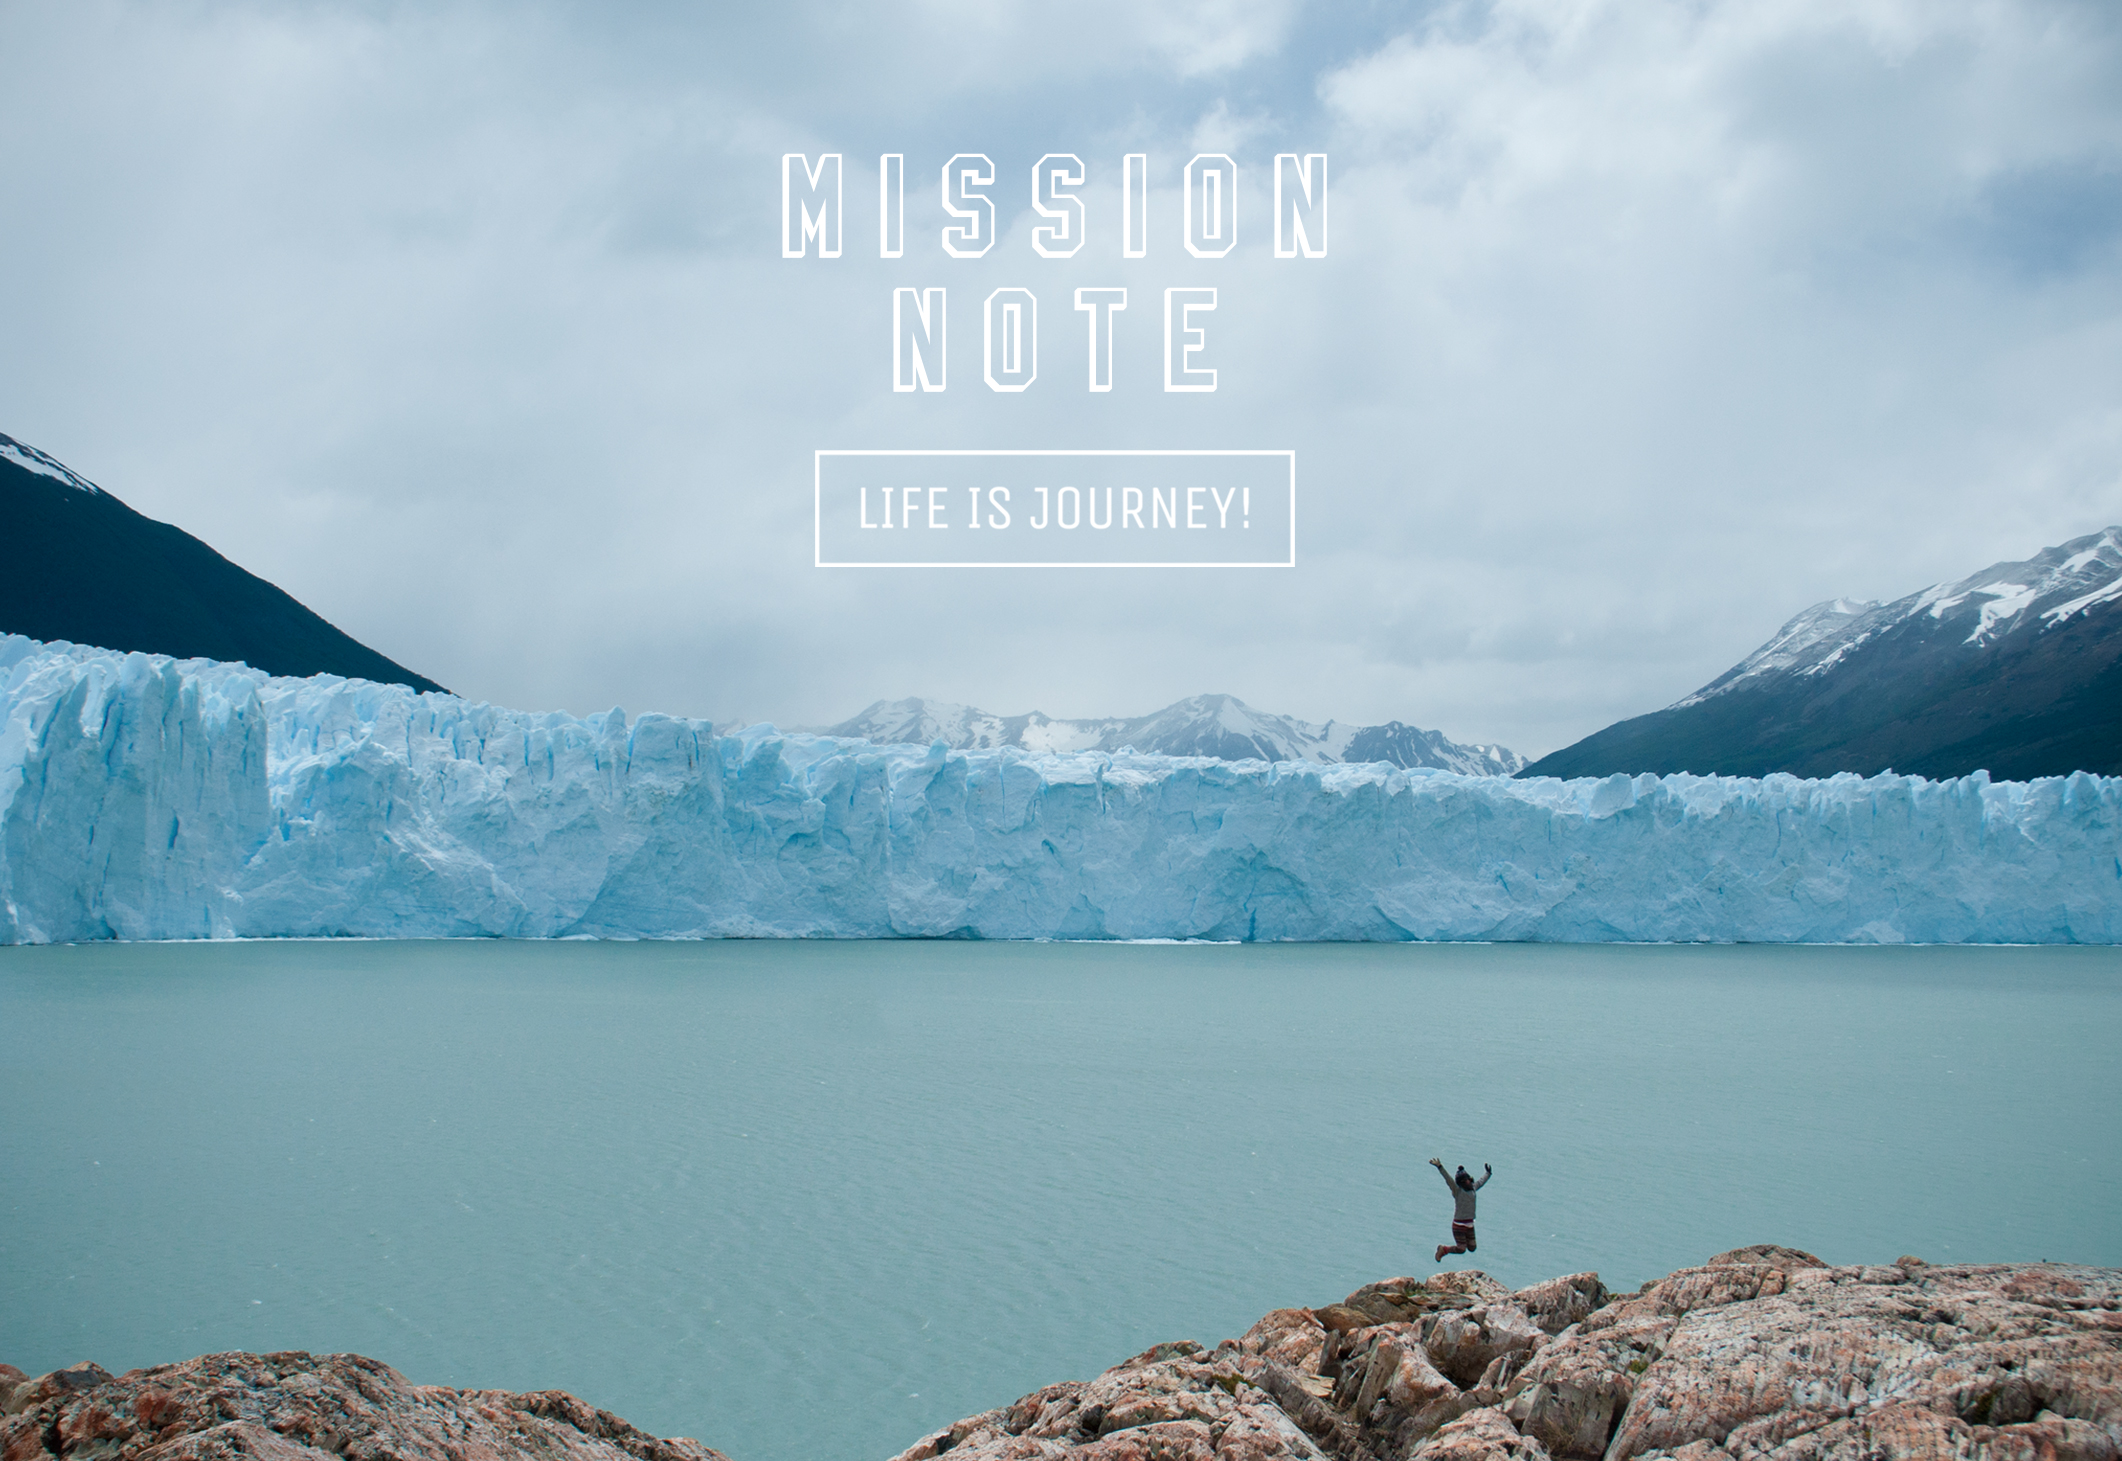 LIFE IS JOURNEY!「MISSION NOTE」展開催中です!